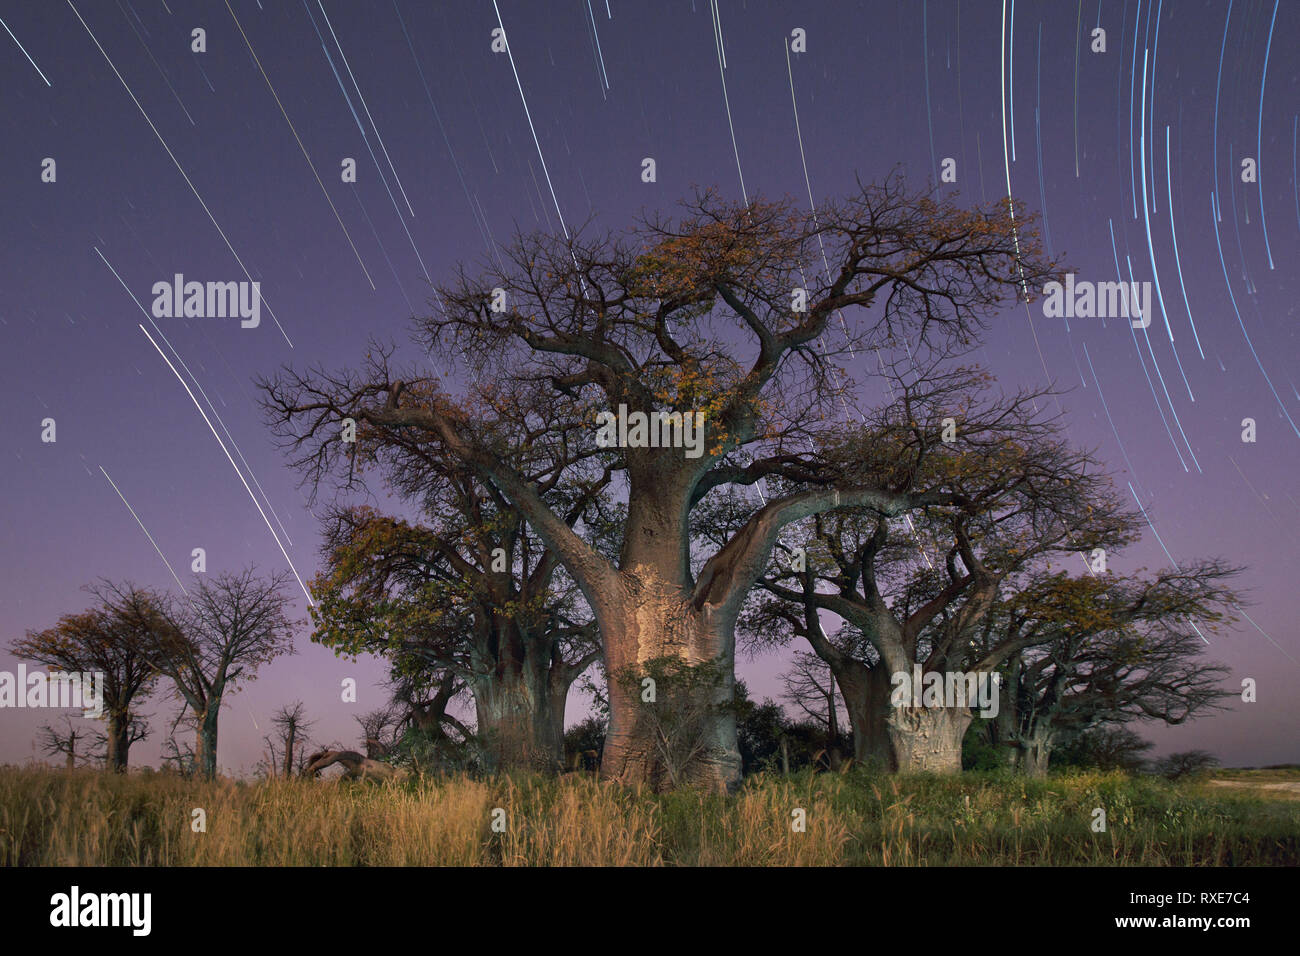 Baines Baobabs located in the Nxai Pans, Botswana. - Stock Image